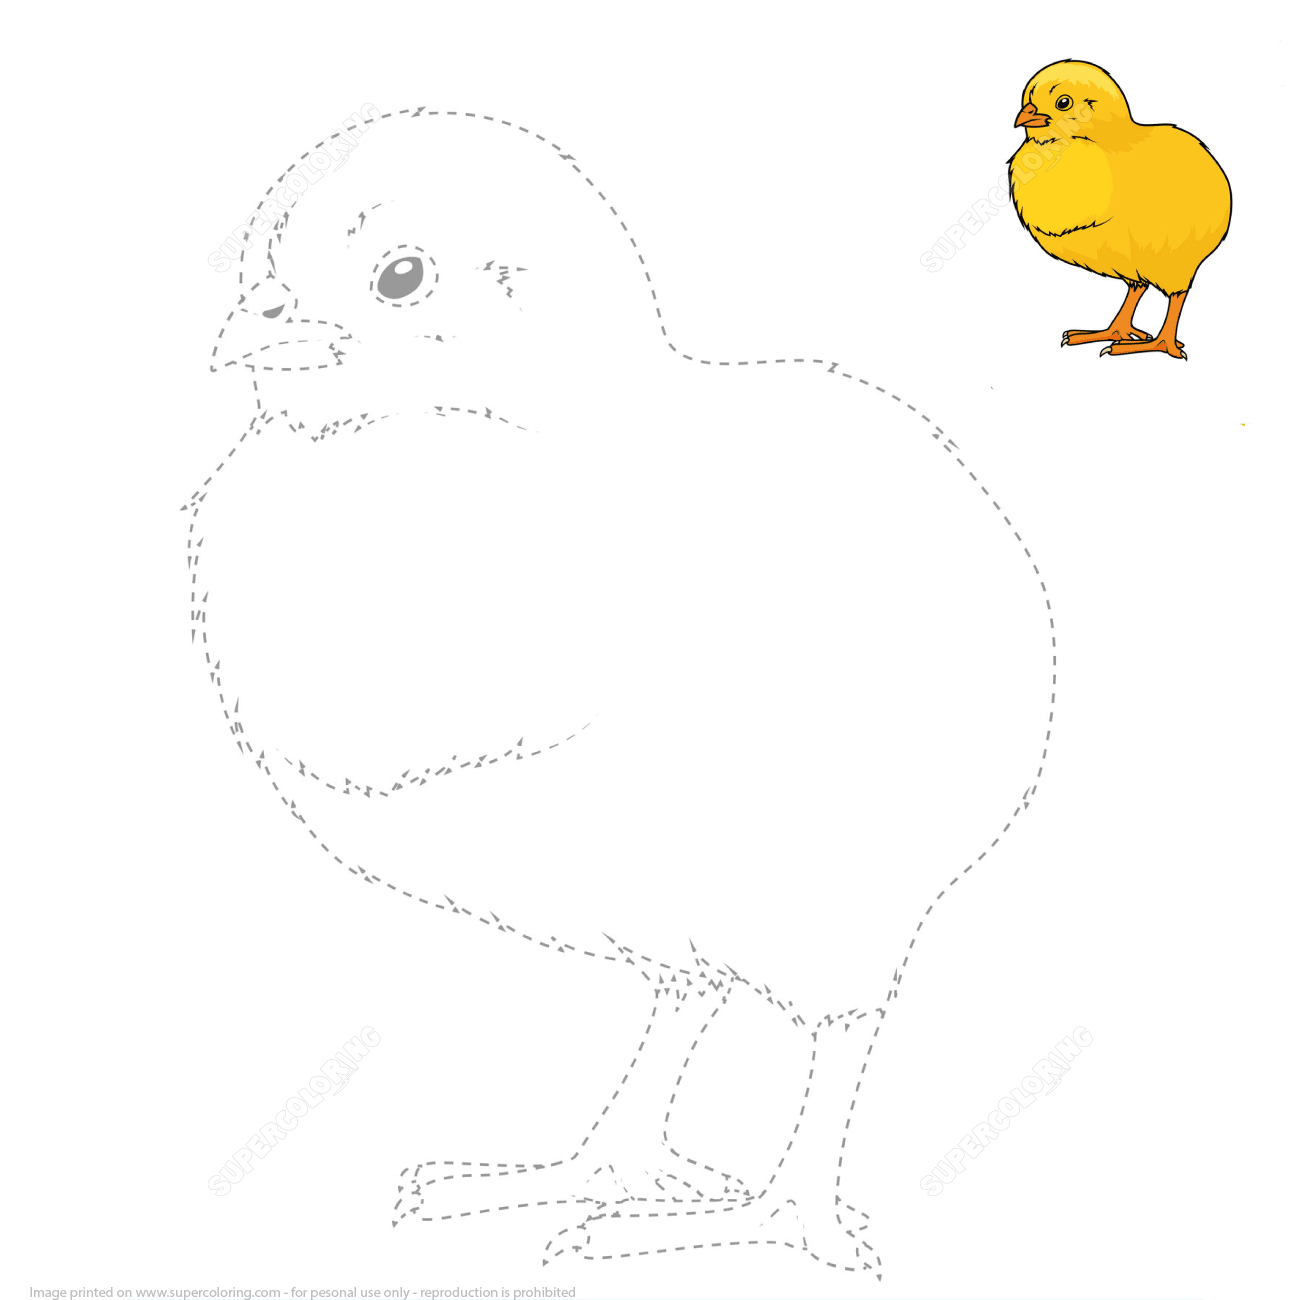 Draw A Chick By Tracing Dashed Line And Color